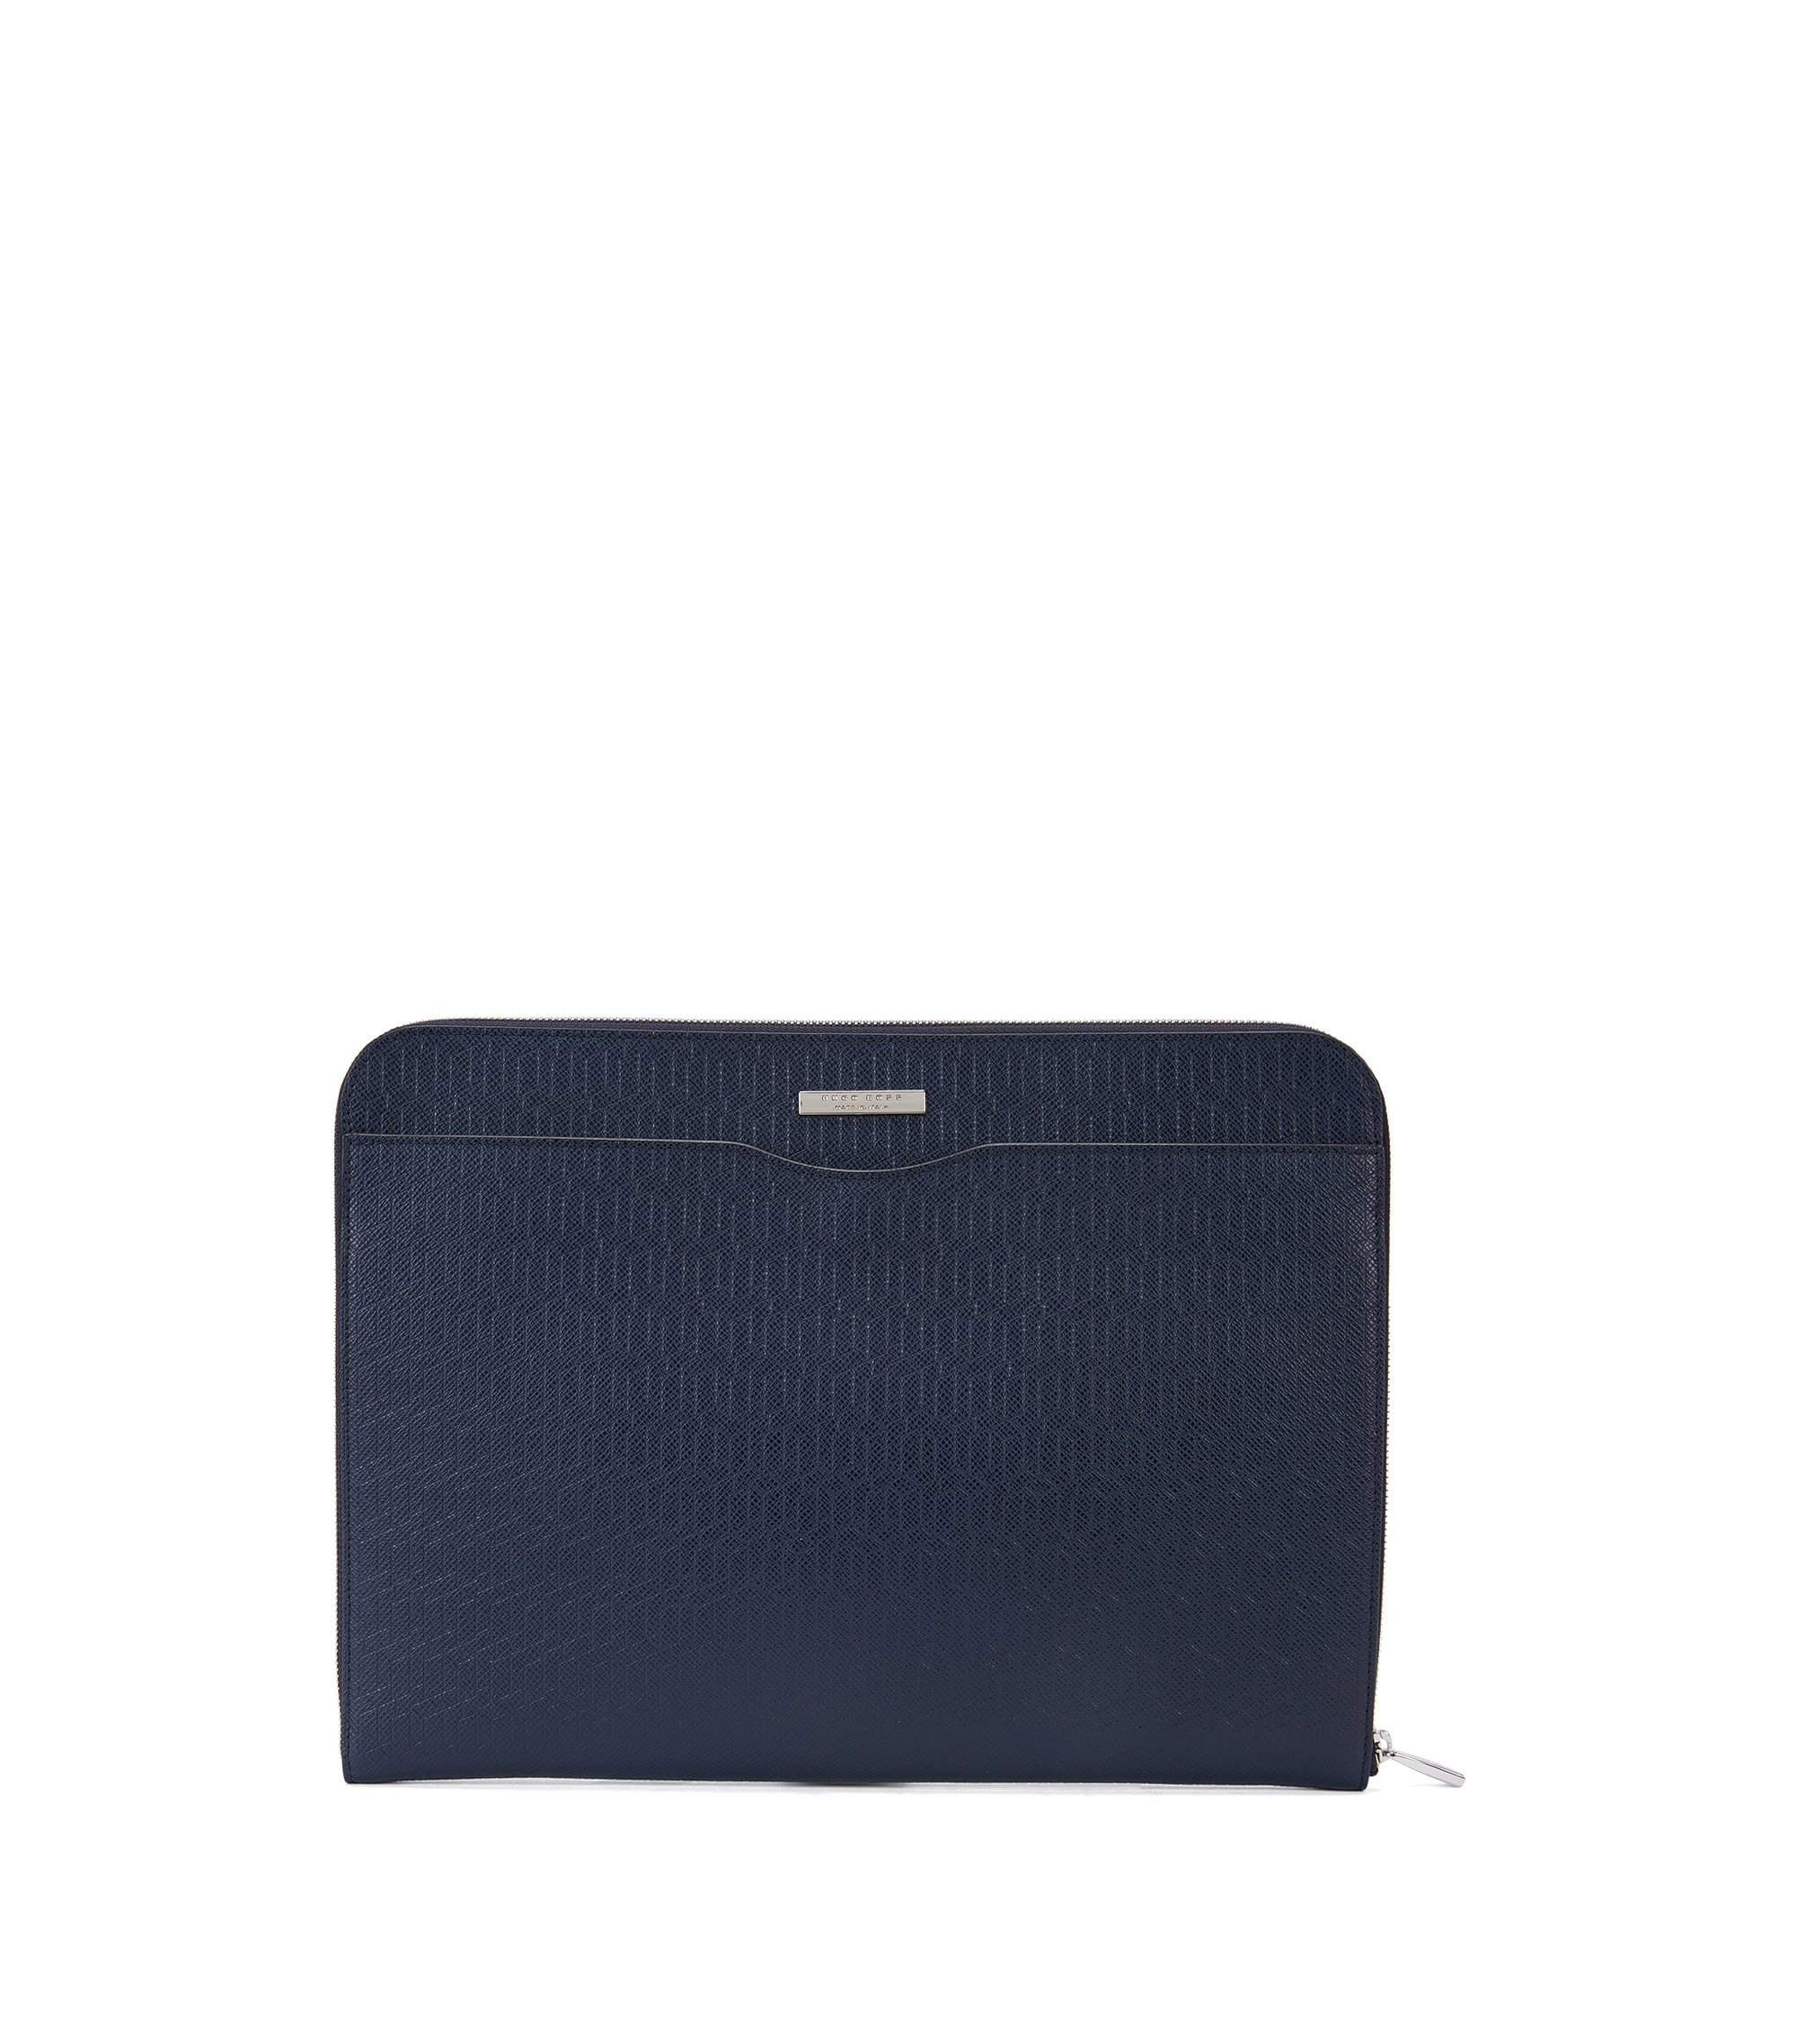 Embossed Leather Portfolio Case | Signature HE Portf, Dark Blue